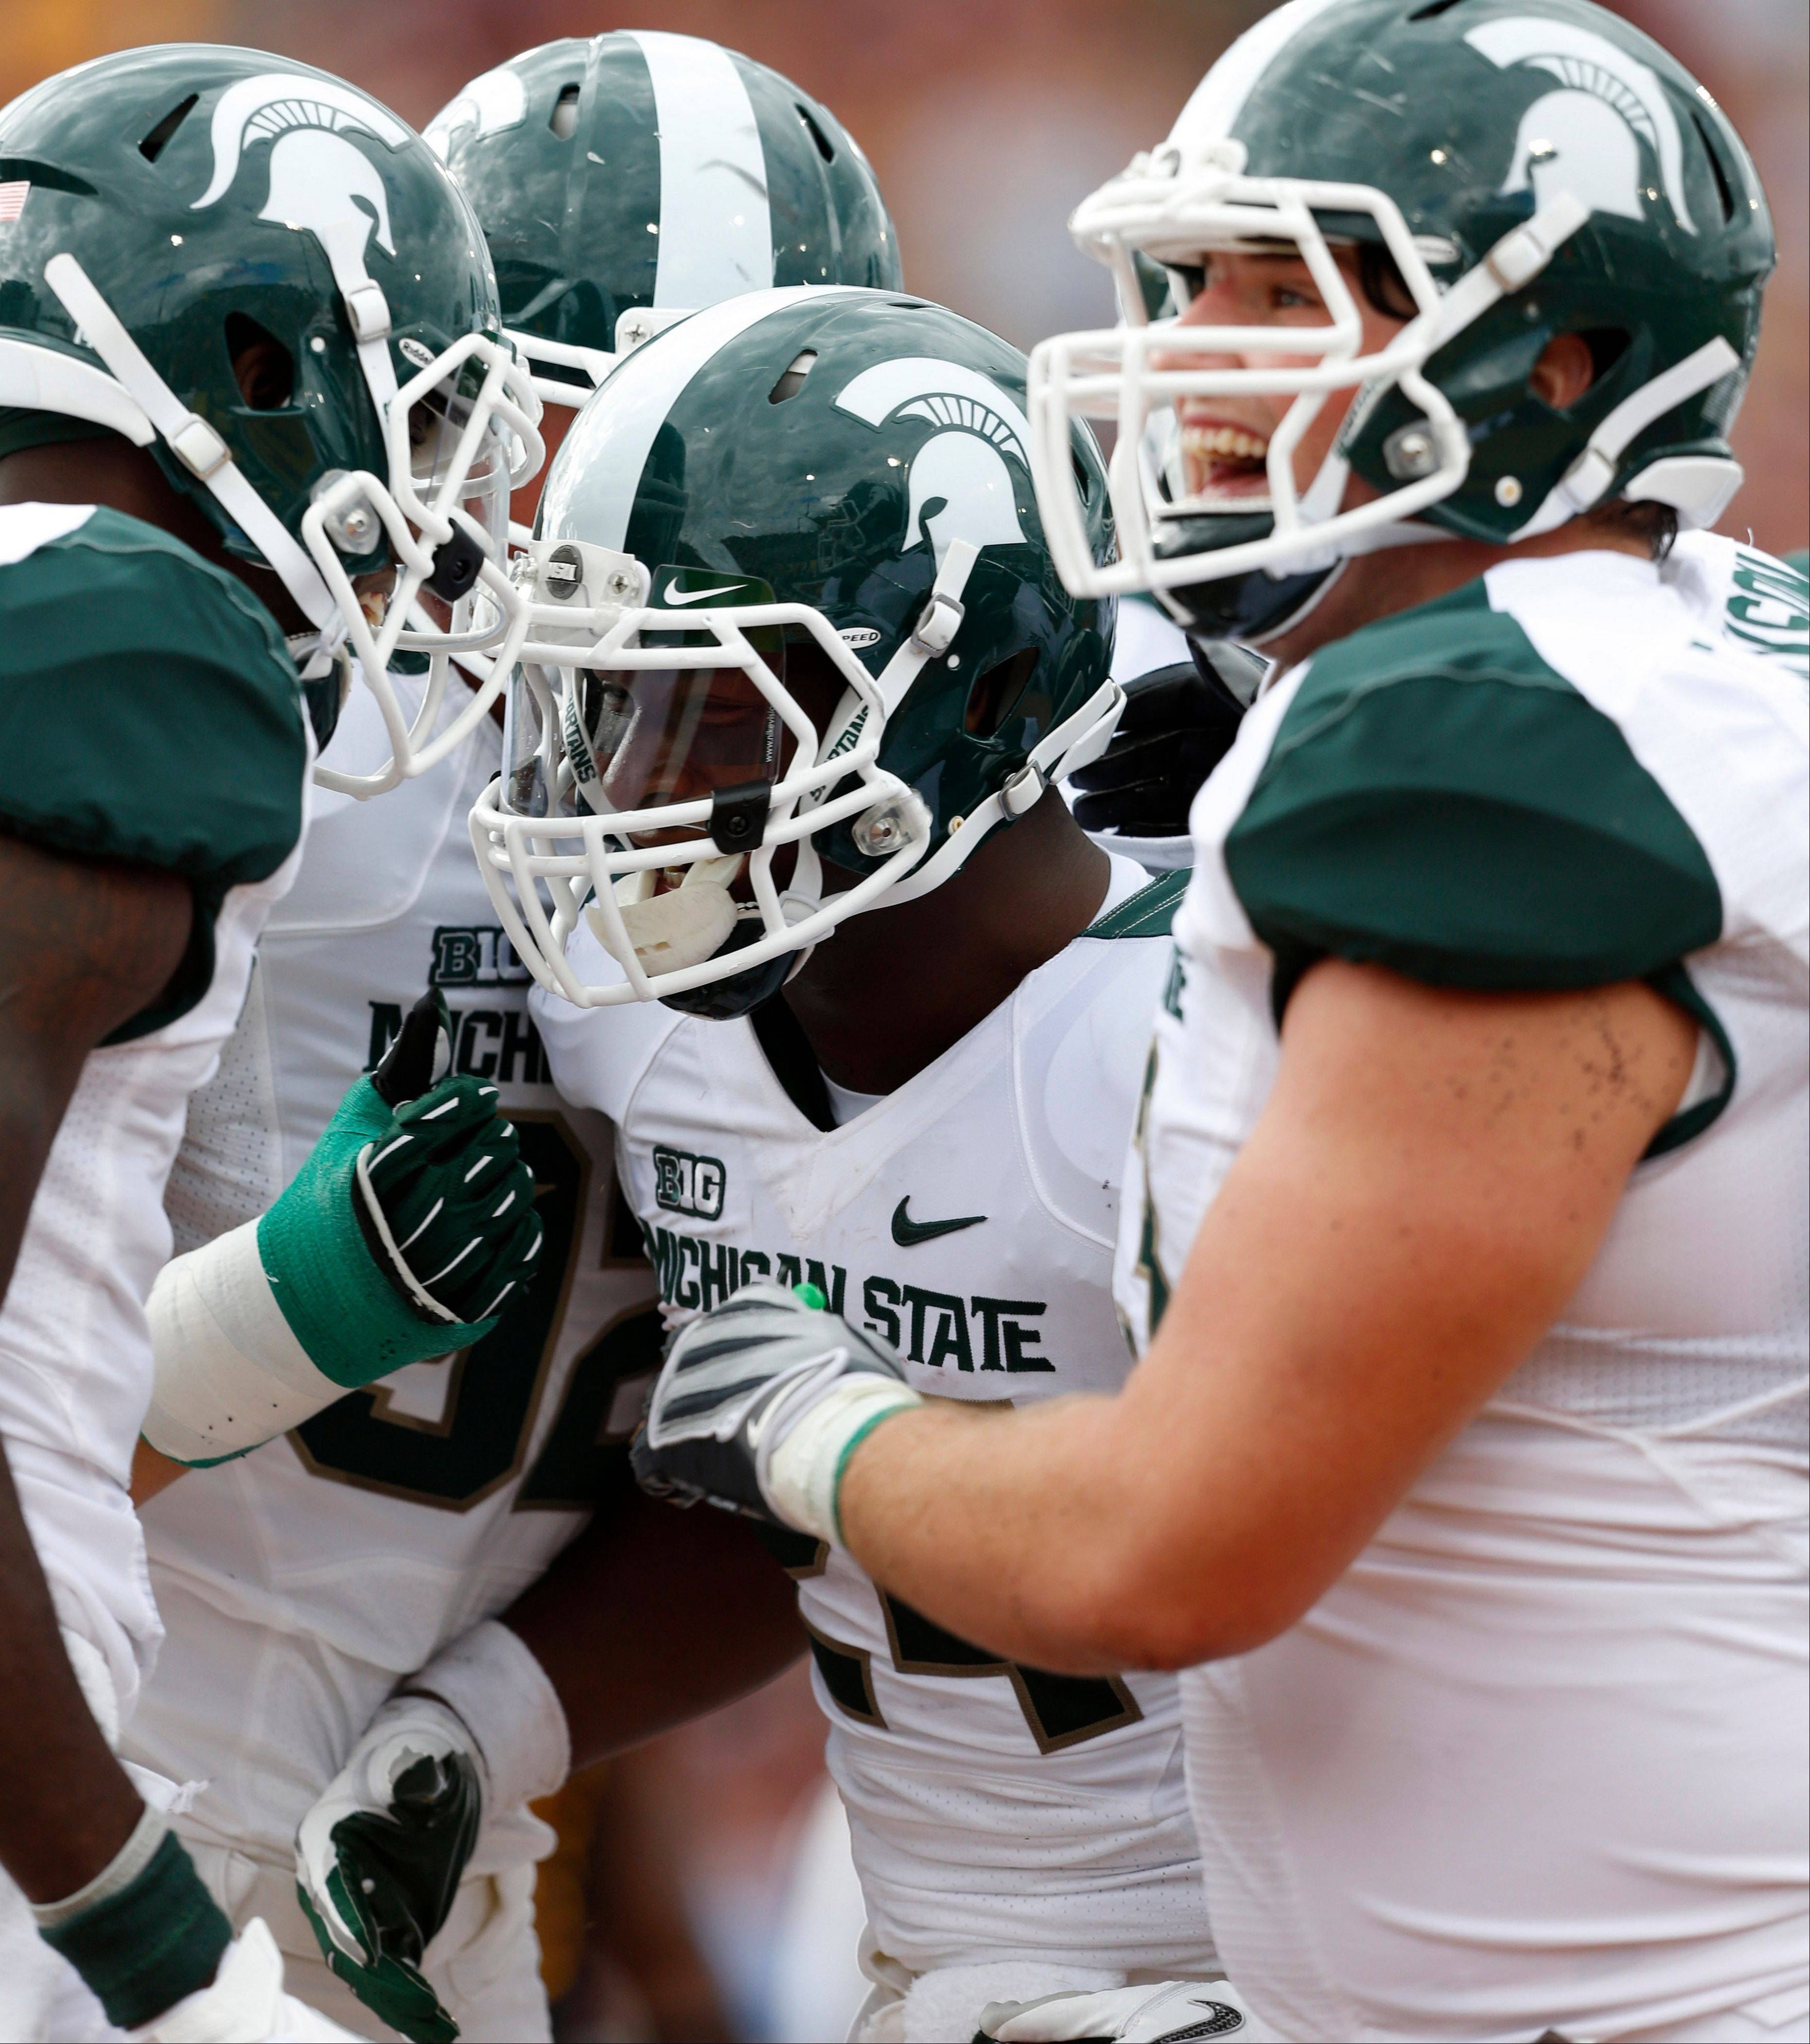 Michigan State's Le'Veon Bell, center, celebrates his second-quarter touchdown with teammates Saturday on the road against Central Michigan.